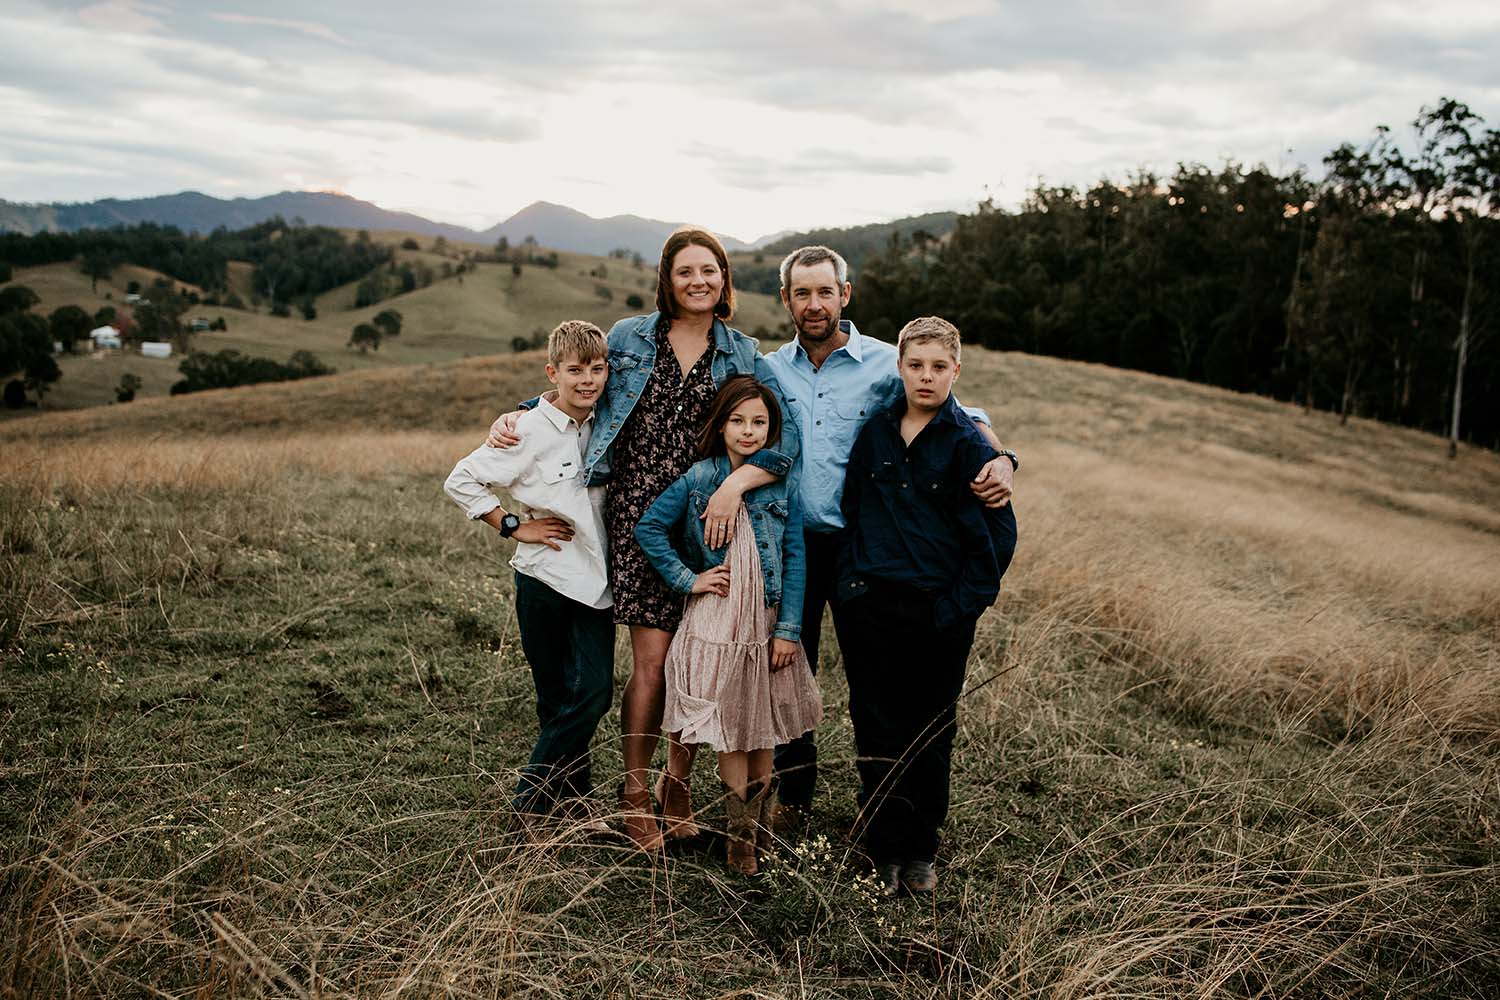 Family of five standing in front of a beautiful landscape -family photography - Nambucca valley photographer - Bellingen photographer - Nambucca heads photographer - lifestyle photographer